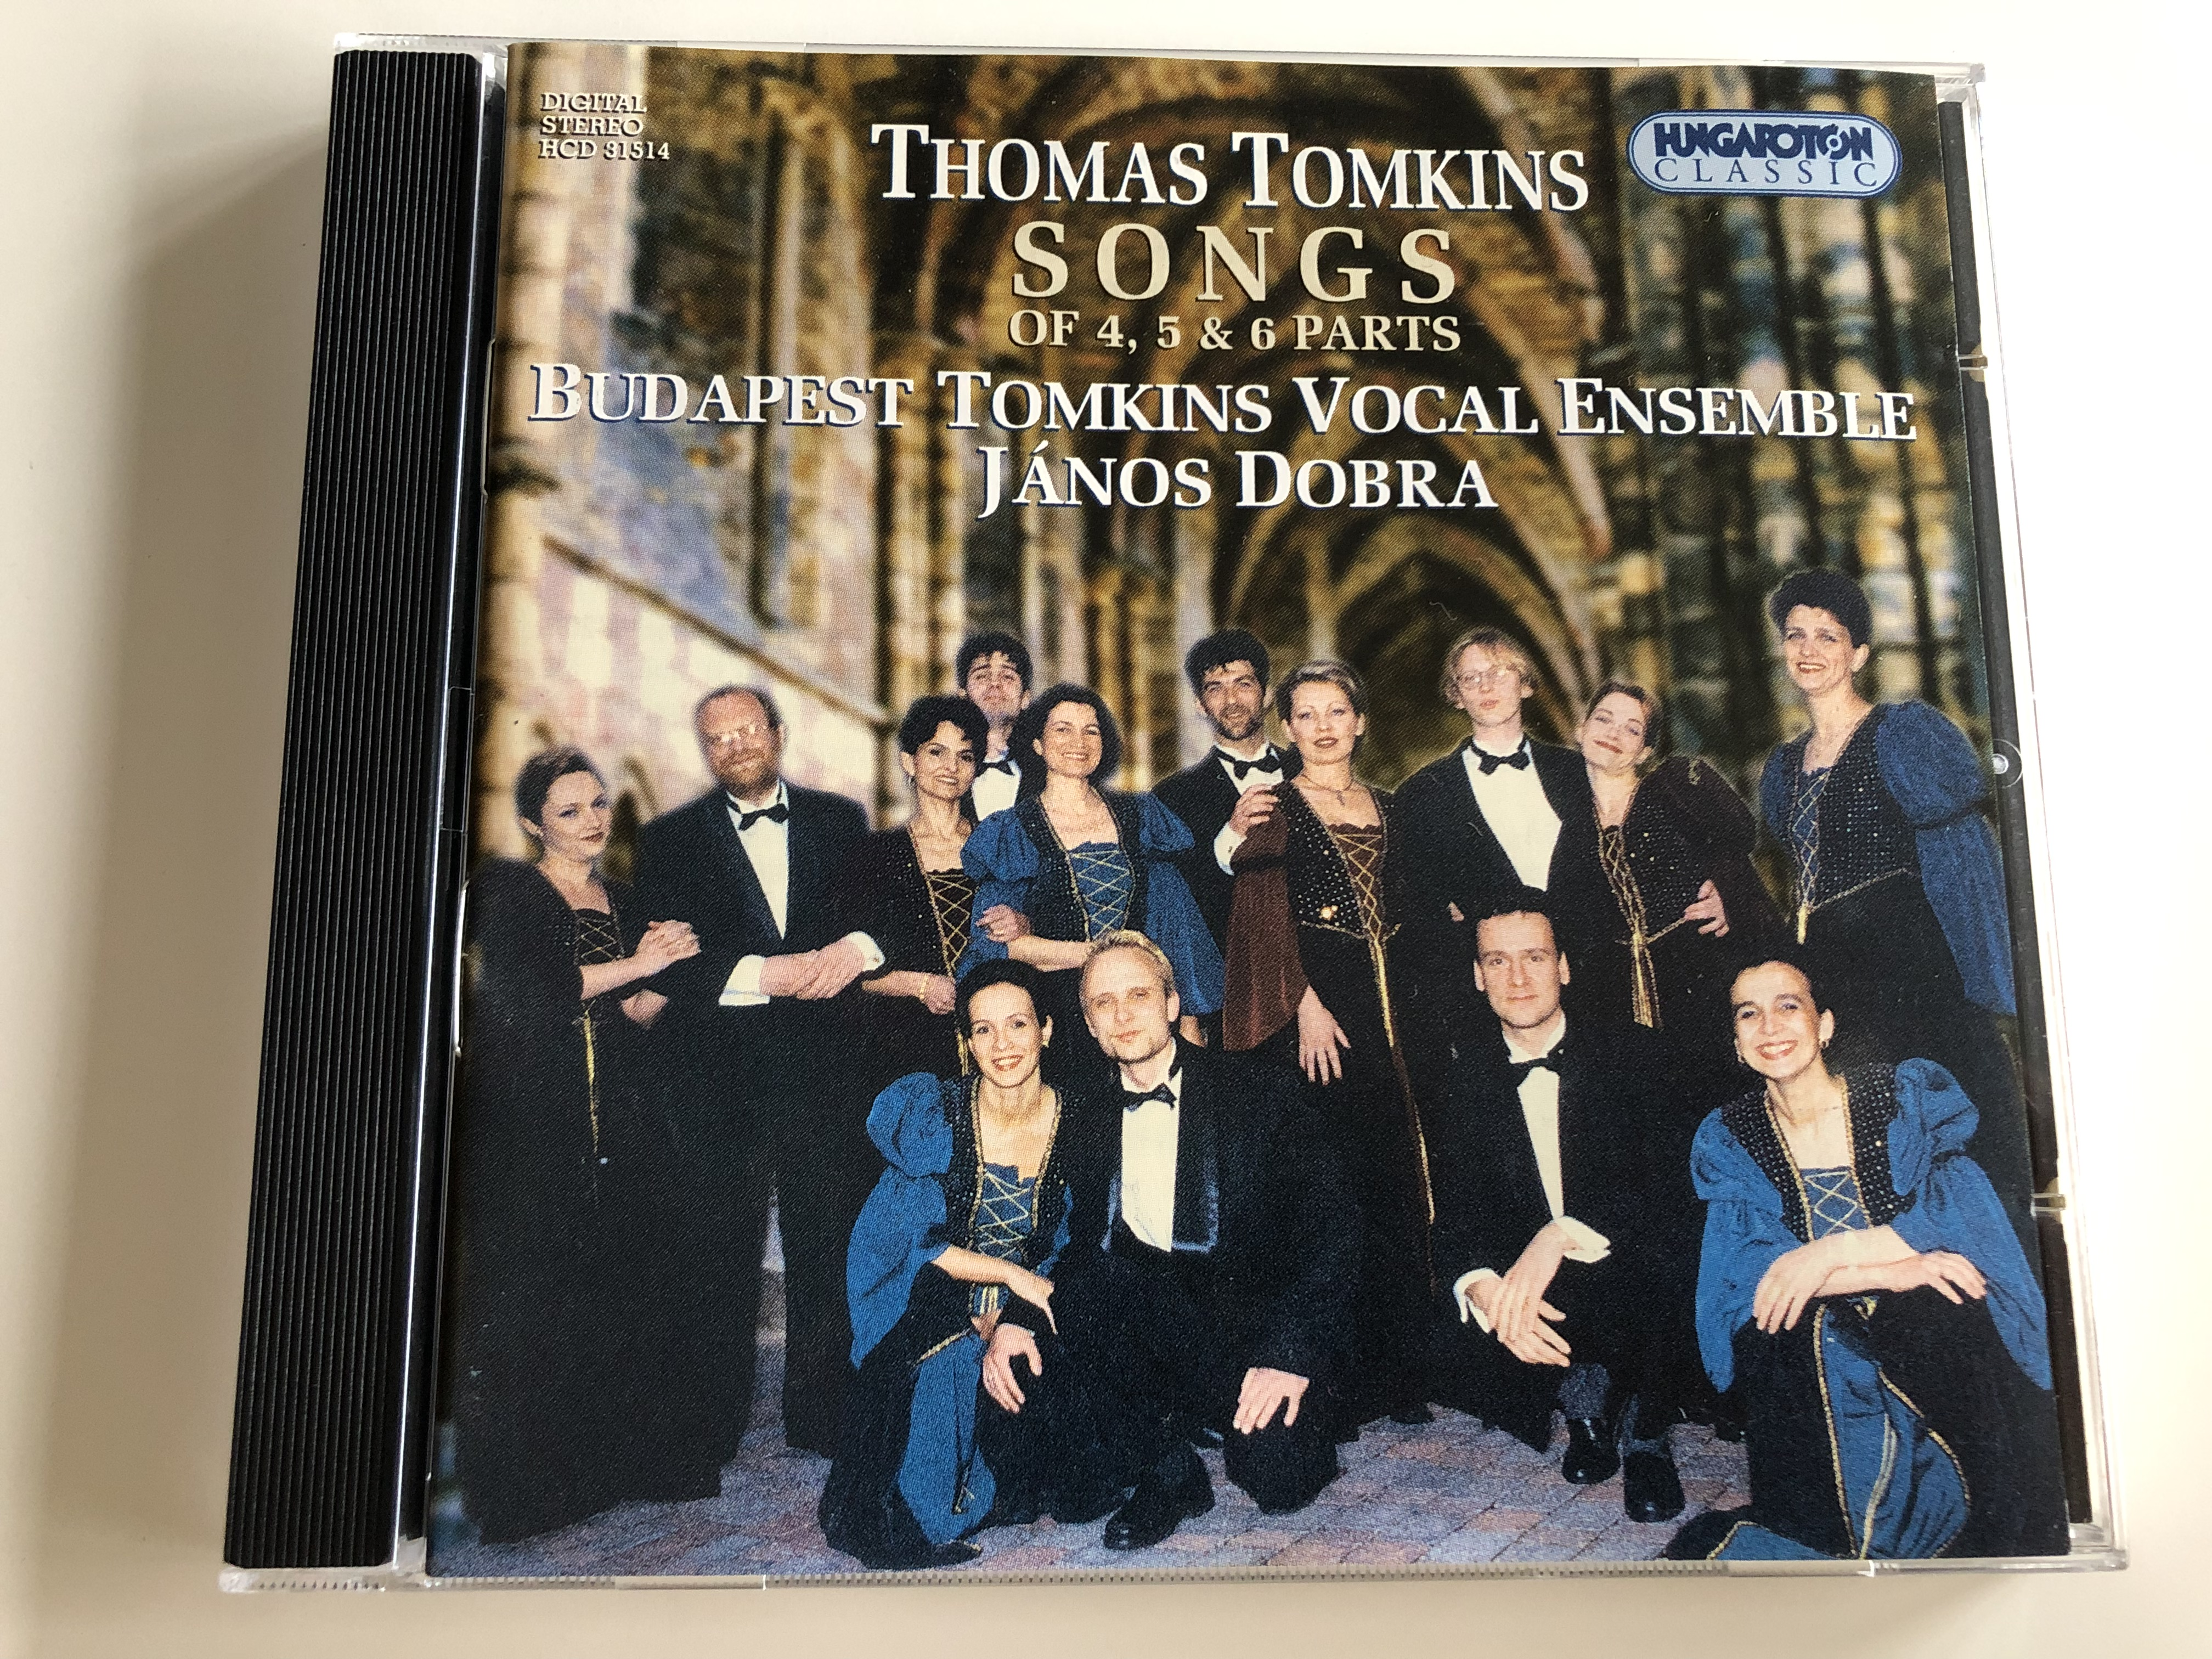 thomas-tomkins-songs-budapest-tomkins-vocal-ensemble-audio-cd-2000-conducted-by-j-nos-dobra-songs-of-4-5-6-parts-hungaroton-classic-hvd-31514-1-.jpg